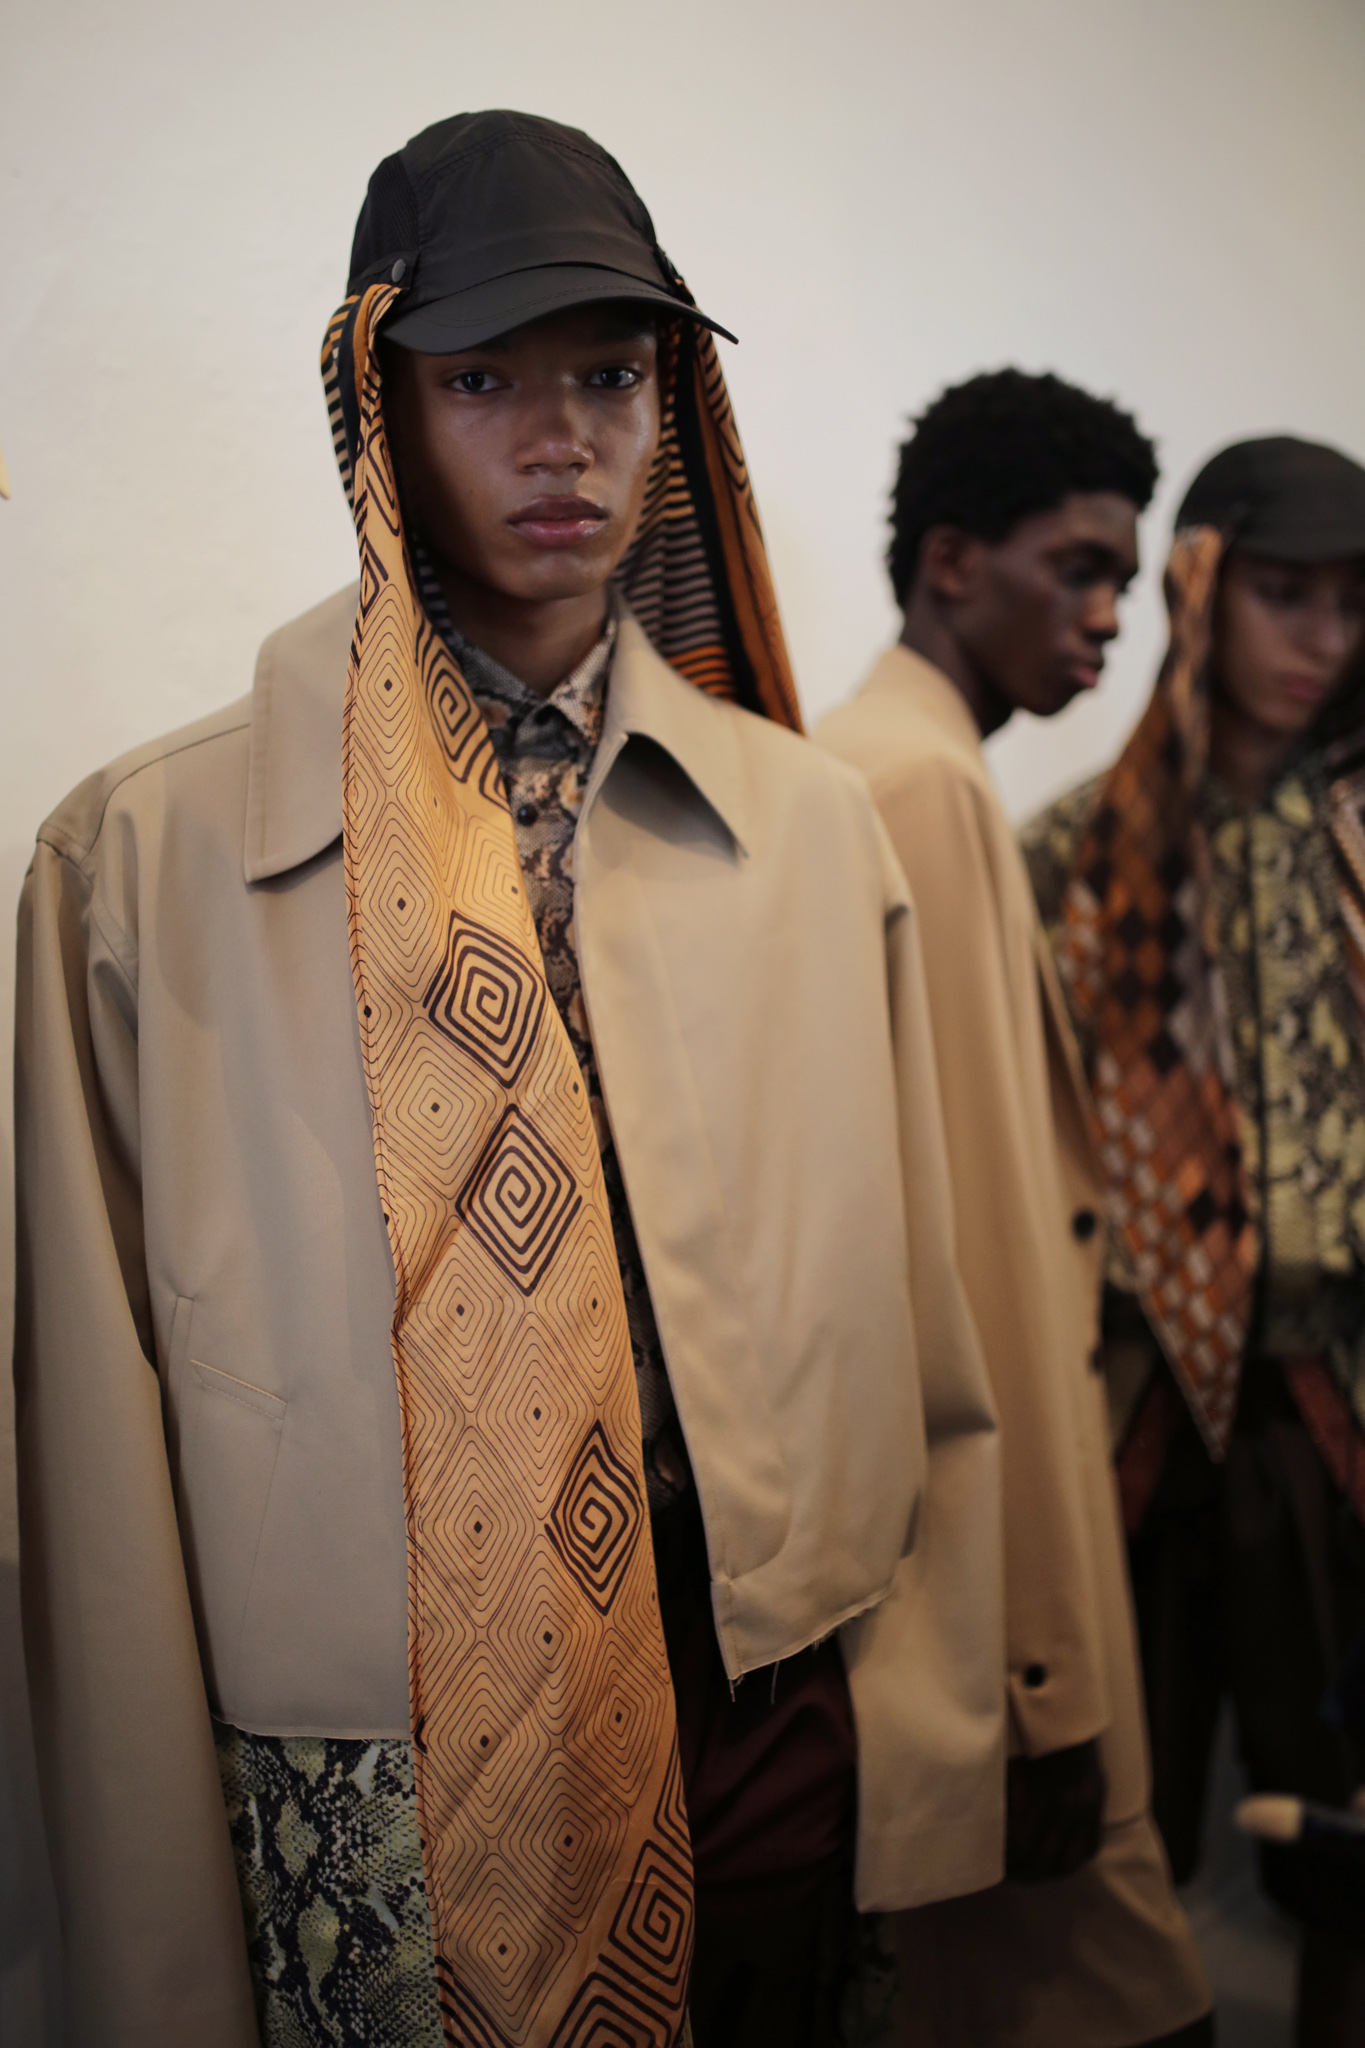 Backstage at CMMN SWDN Men's SS 202